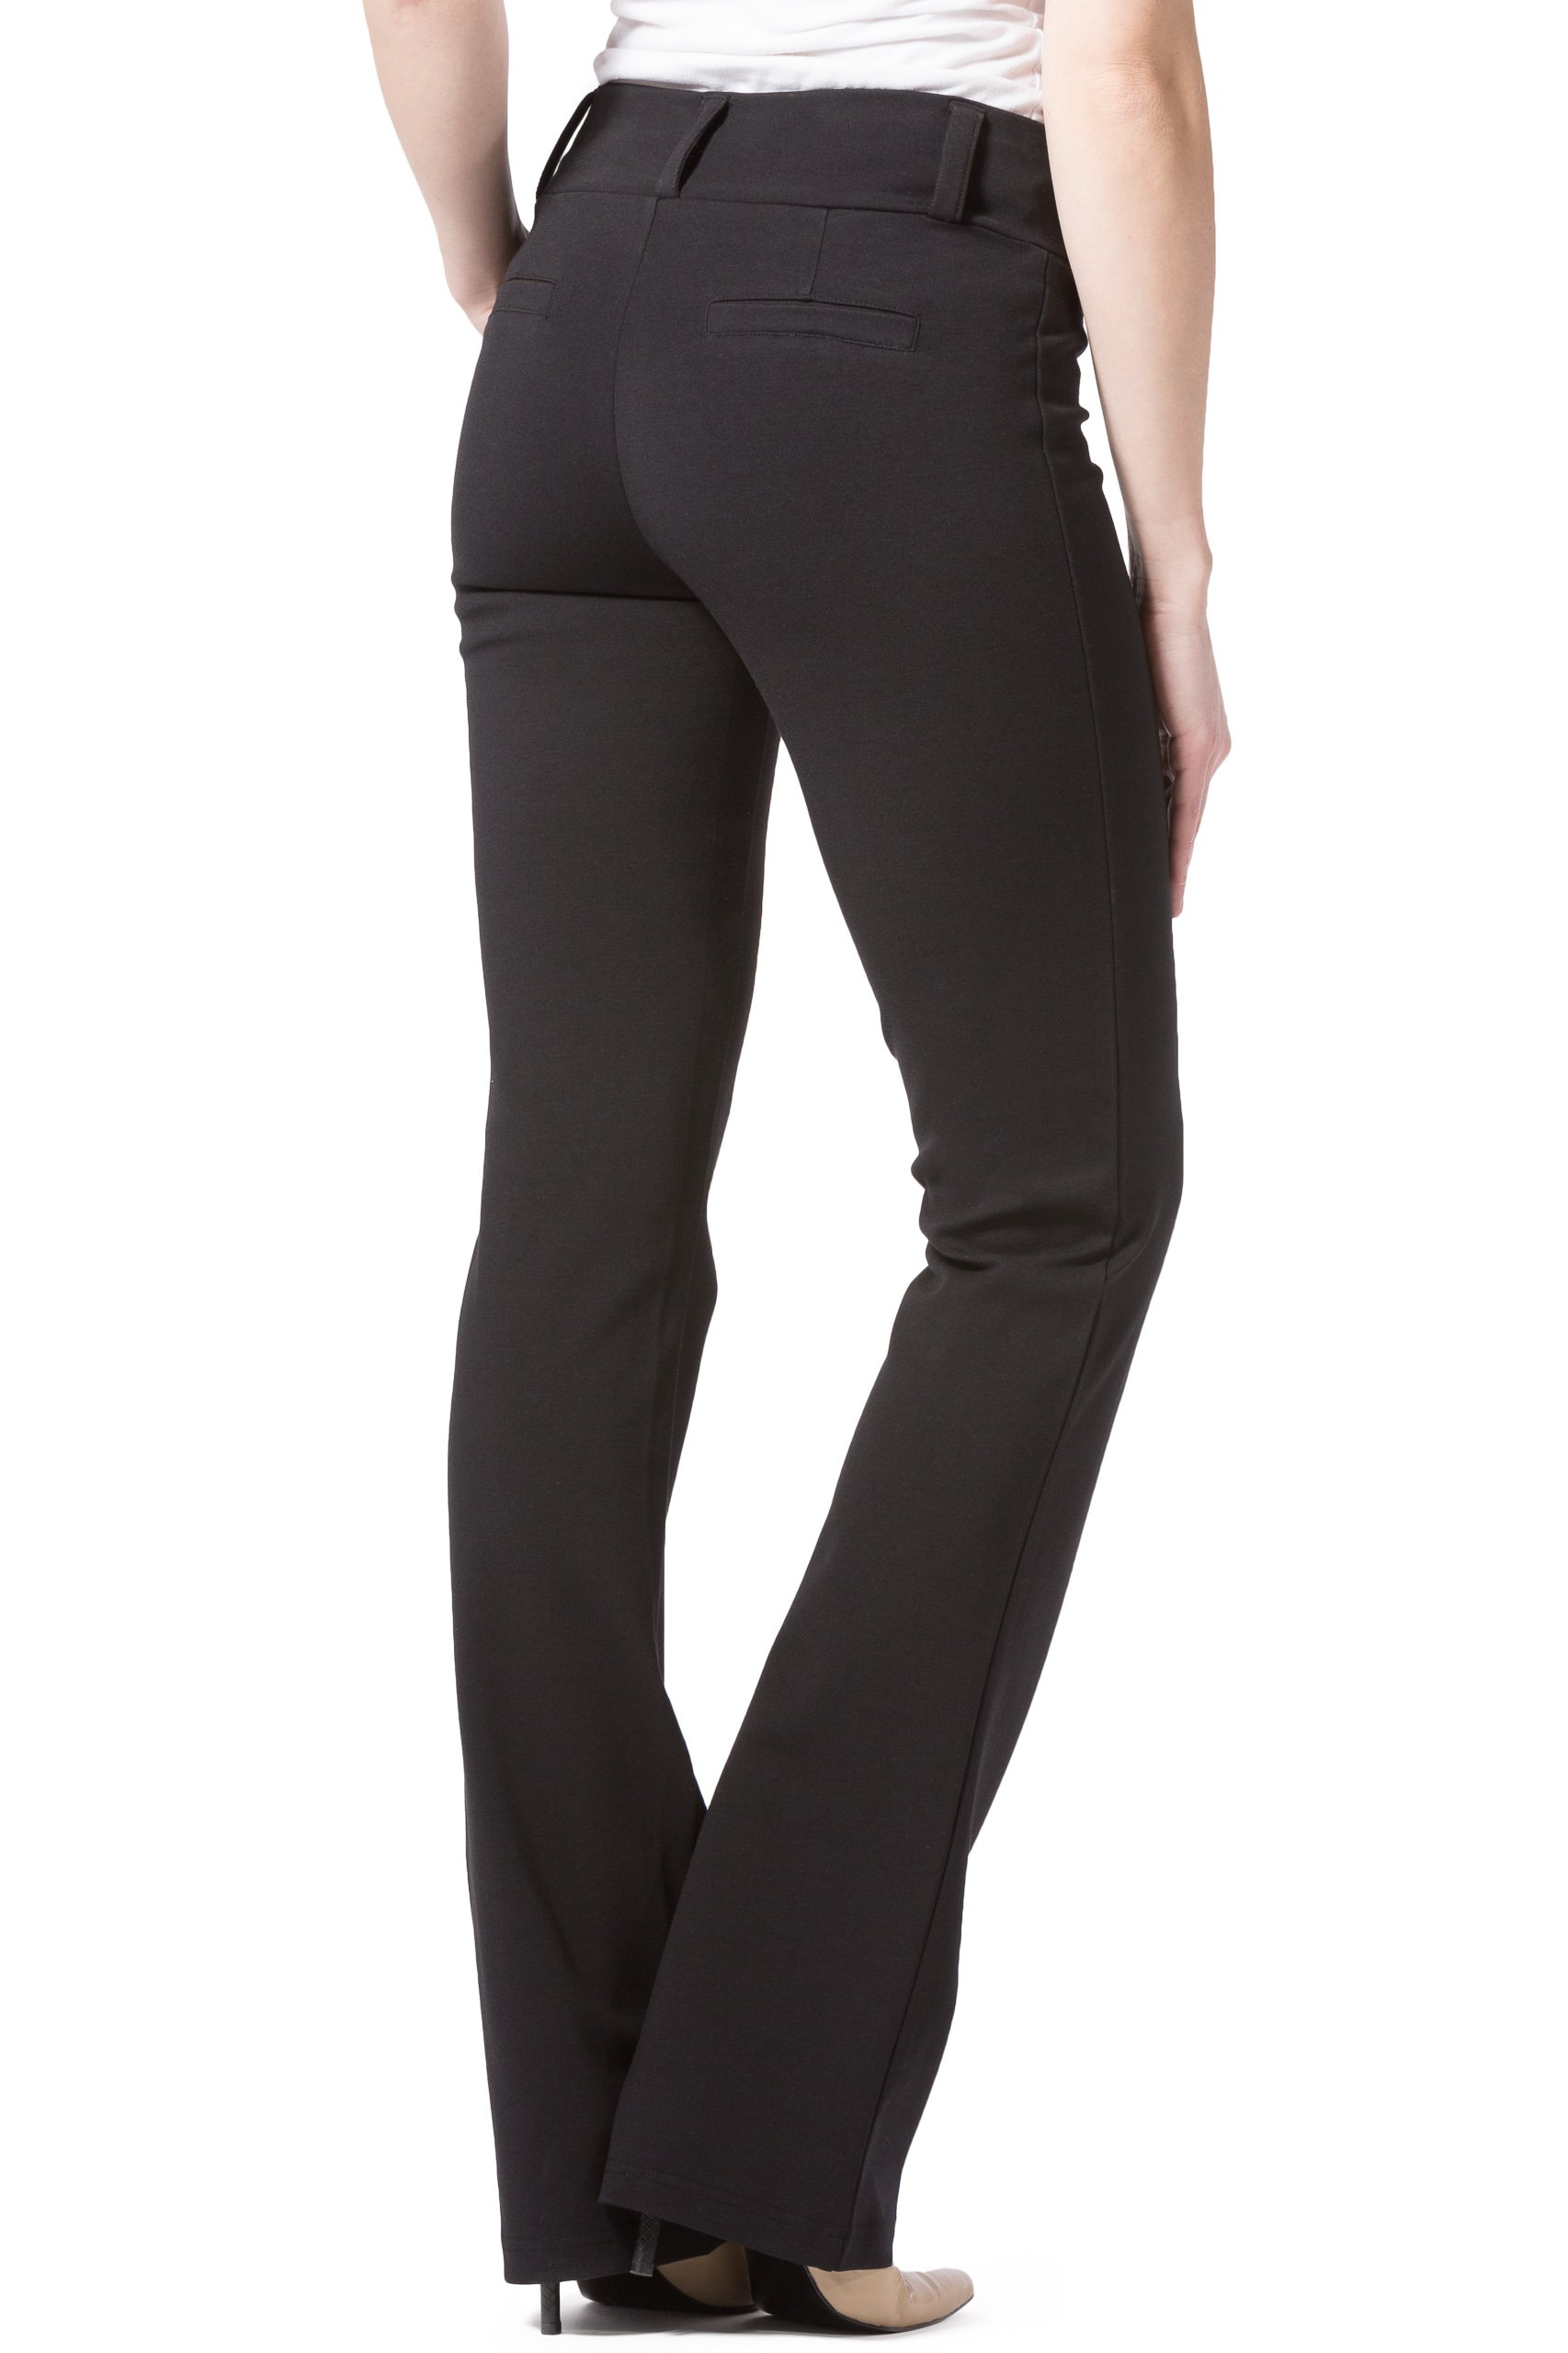 Fishers Finery Women's Ponte Boot Leg Dress Pant; Pull On (Black, M Petite) by Fishers Finery (Image #6)